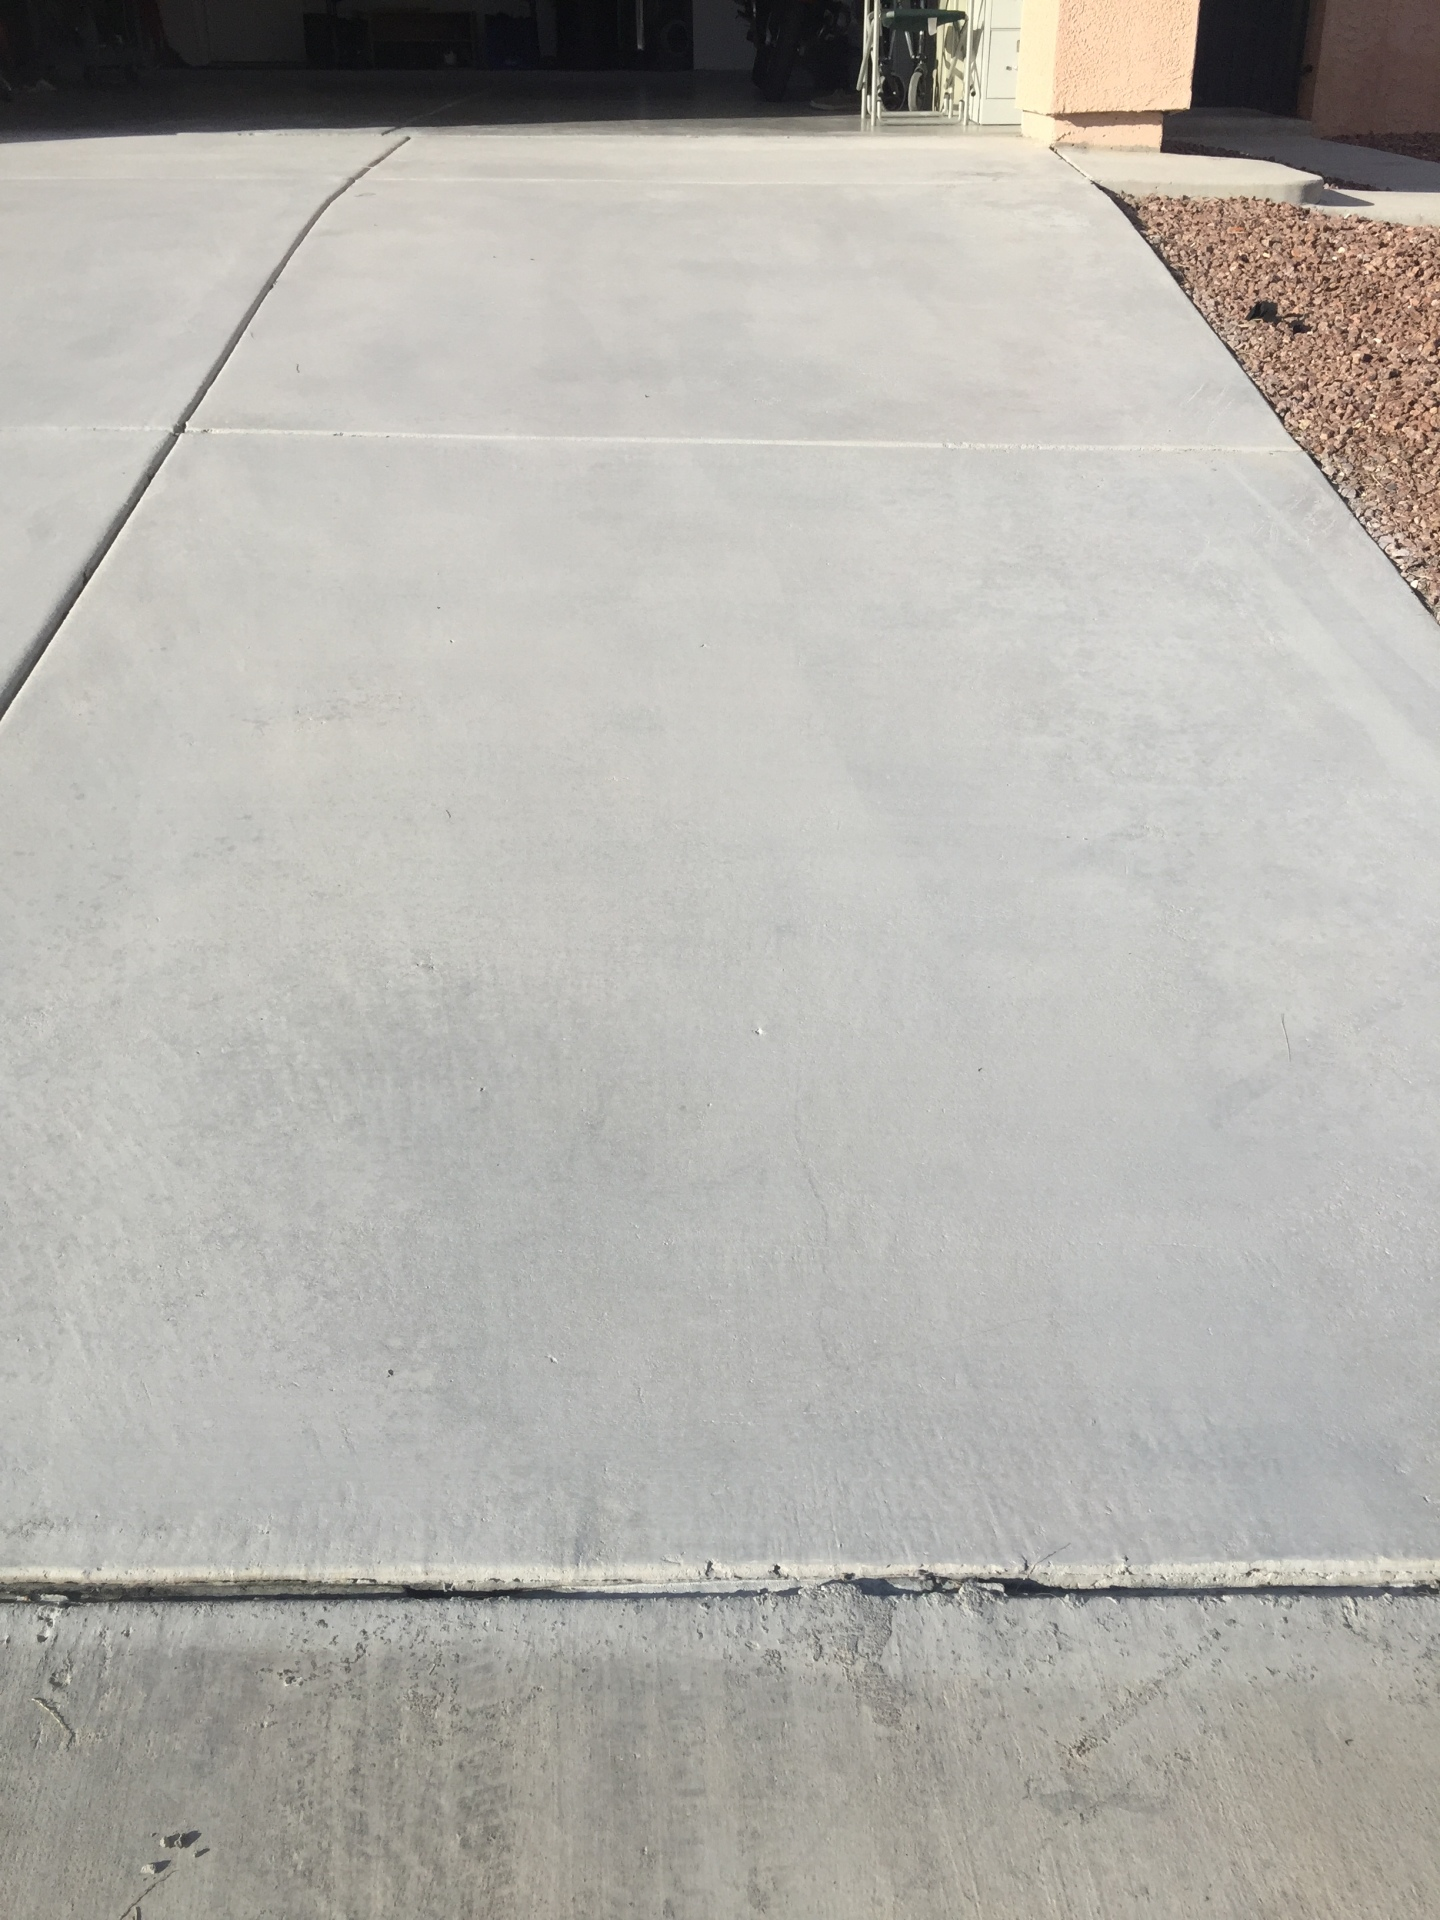 concrete cleaning; cleaning concrete; concrete cleaner; best concrete cleaning; clean concrete; commercial concrete cleaning; residential concrete cleaning; concrete sealing; sealing concrete; concrete sealer; seal concrete; commercial concrete sealing; residential concrete sealing; driveway sealing; driveway sealer; sealing driveway; seal driveway; concrete patio sealing; sealing concrete patio; concrete patio sealer; commercial concrete patio sealing; concrete staining; staining concrete; concrete stain; stain concrete; commercial concrete staining; driveway staining; staining driveway; driveway stain; best driveway staining; garage floor staining; garage floor epoxy coating; concrete patio staining; staining concrete patio; concrete patio stain; best concrete patio staining; paver sealing; sealing pavers; paver sealer; paver seal; brick paver sealing; sealing brick pavers; paver cleaning; cleaning pavers; brick paver cleaning; cleaning brick paver; concrete polishing; polishing concrete; concrete polish; polish concrete; garage floor polishing; polishing garage floor; warehouse floor polishing; polishing warehouse floor; warehouse floor polish; best concrete floor polish; commercial warehouse floor polishing; commercial garage floor polishing